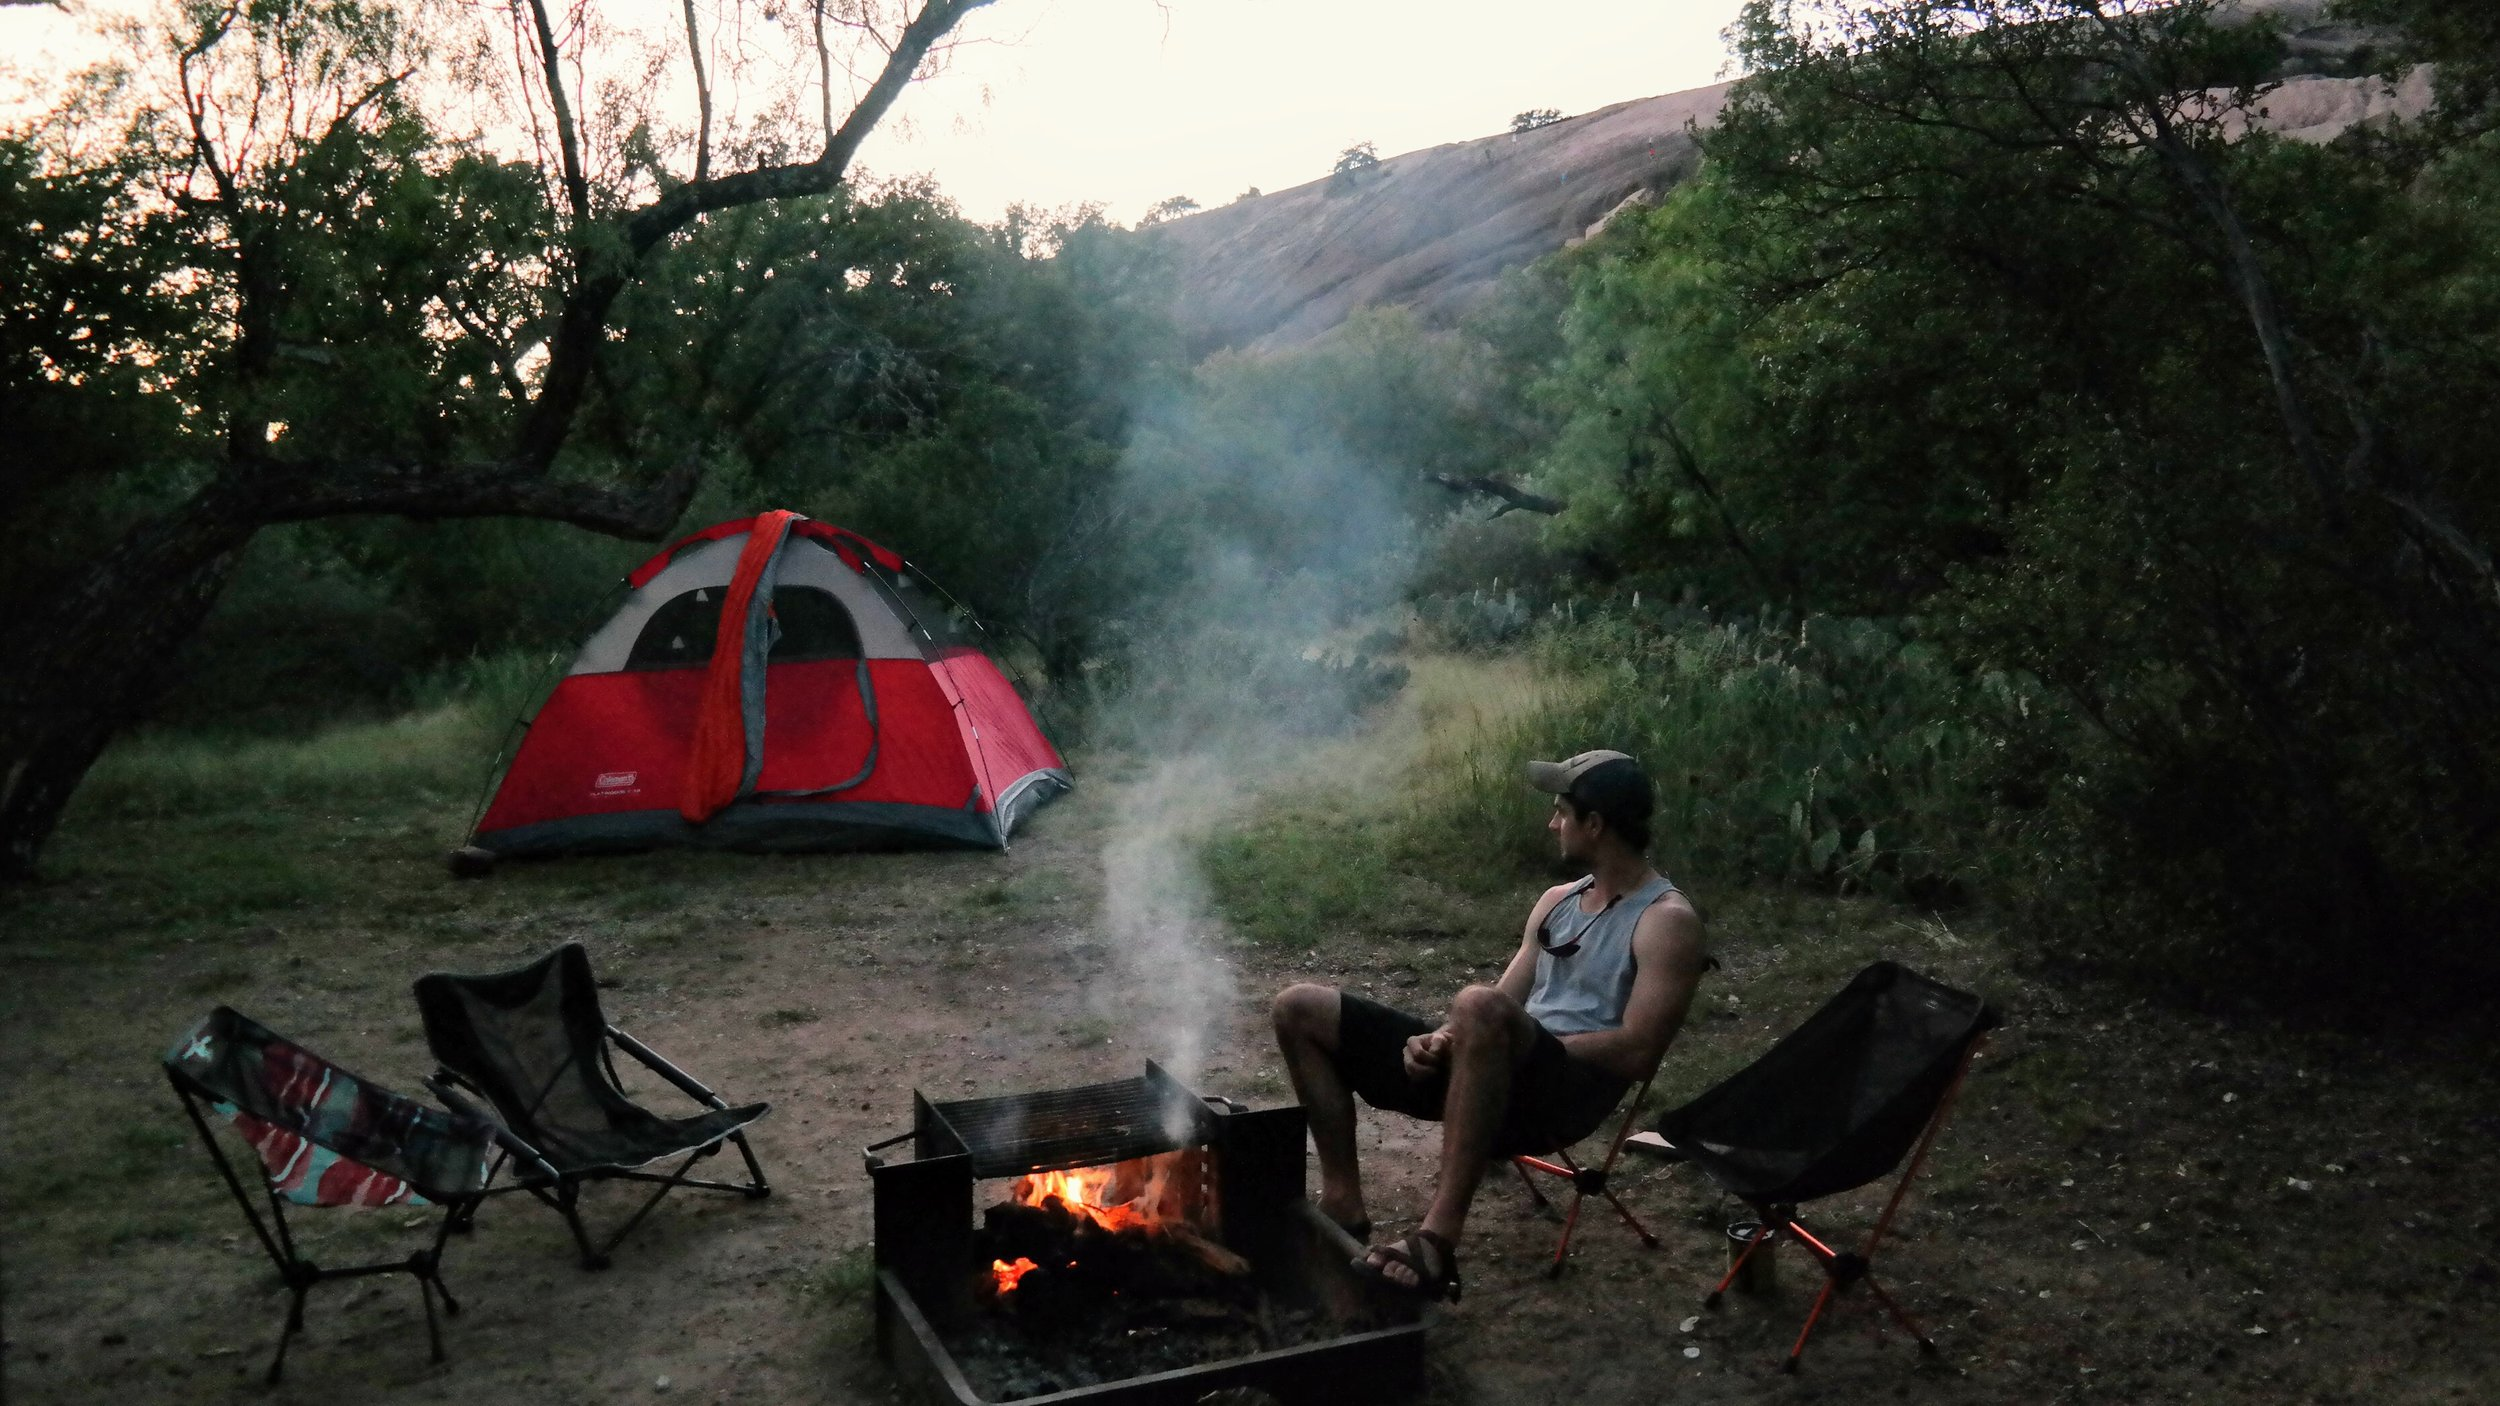 Walk-in campsite #35 with a view of the enchanted rock behind.